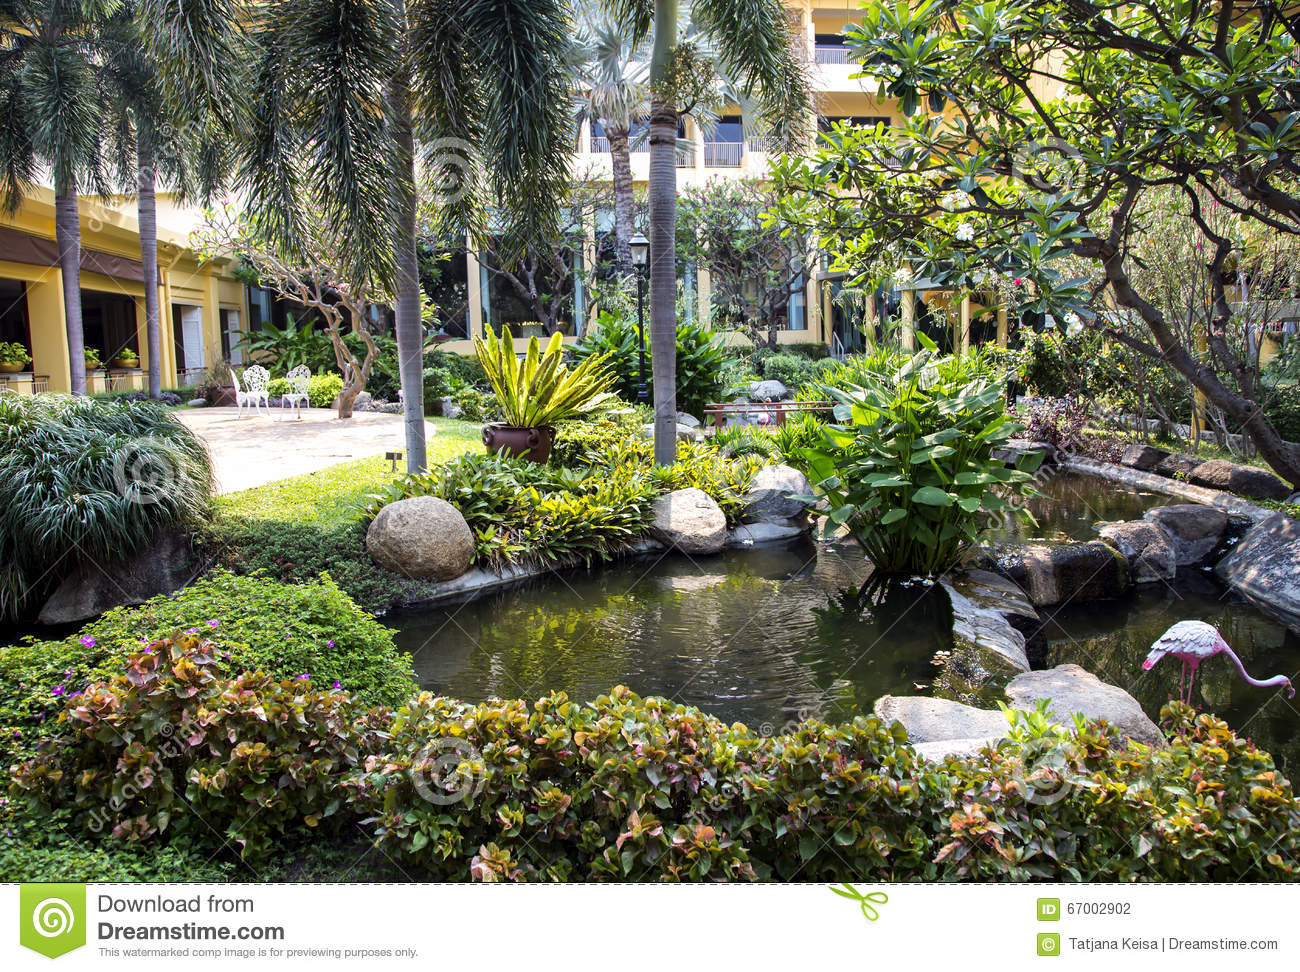 decorative pool in a beautiful tropical garden stock photo - image